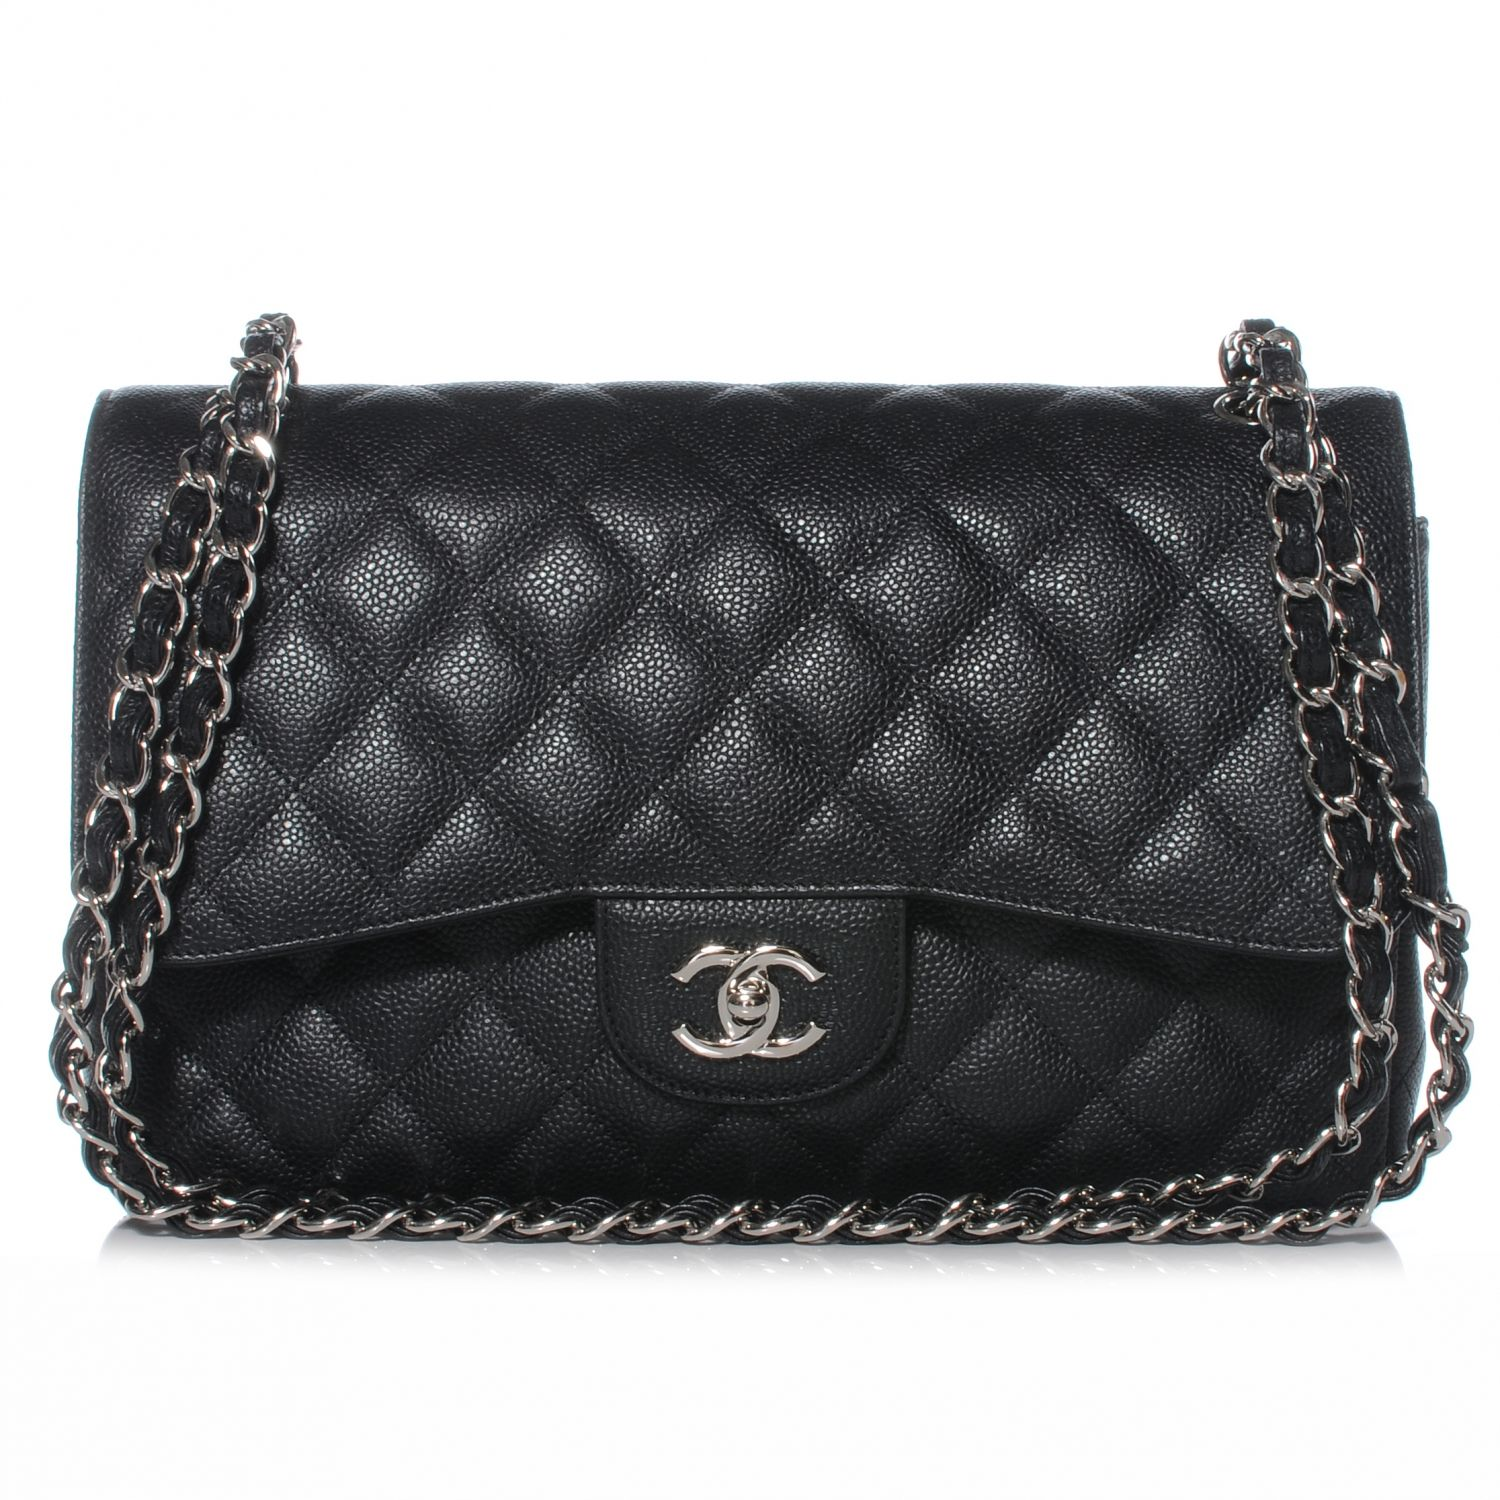 286882059d91 Chanel Black Quilted Caviar Classic Jumbo 2.55 Double Flap Bag with Silver  hardware.